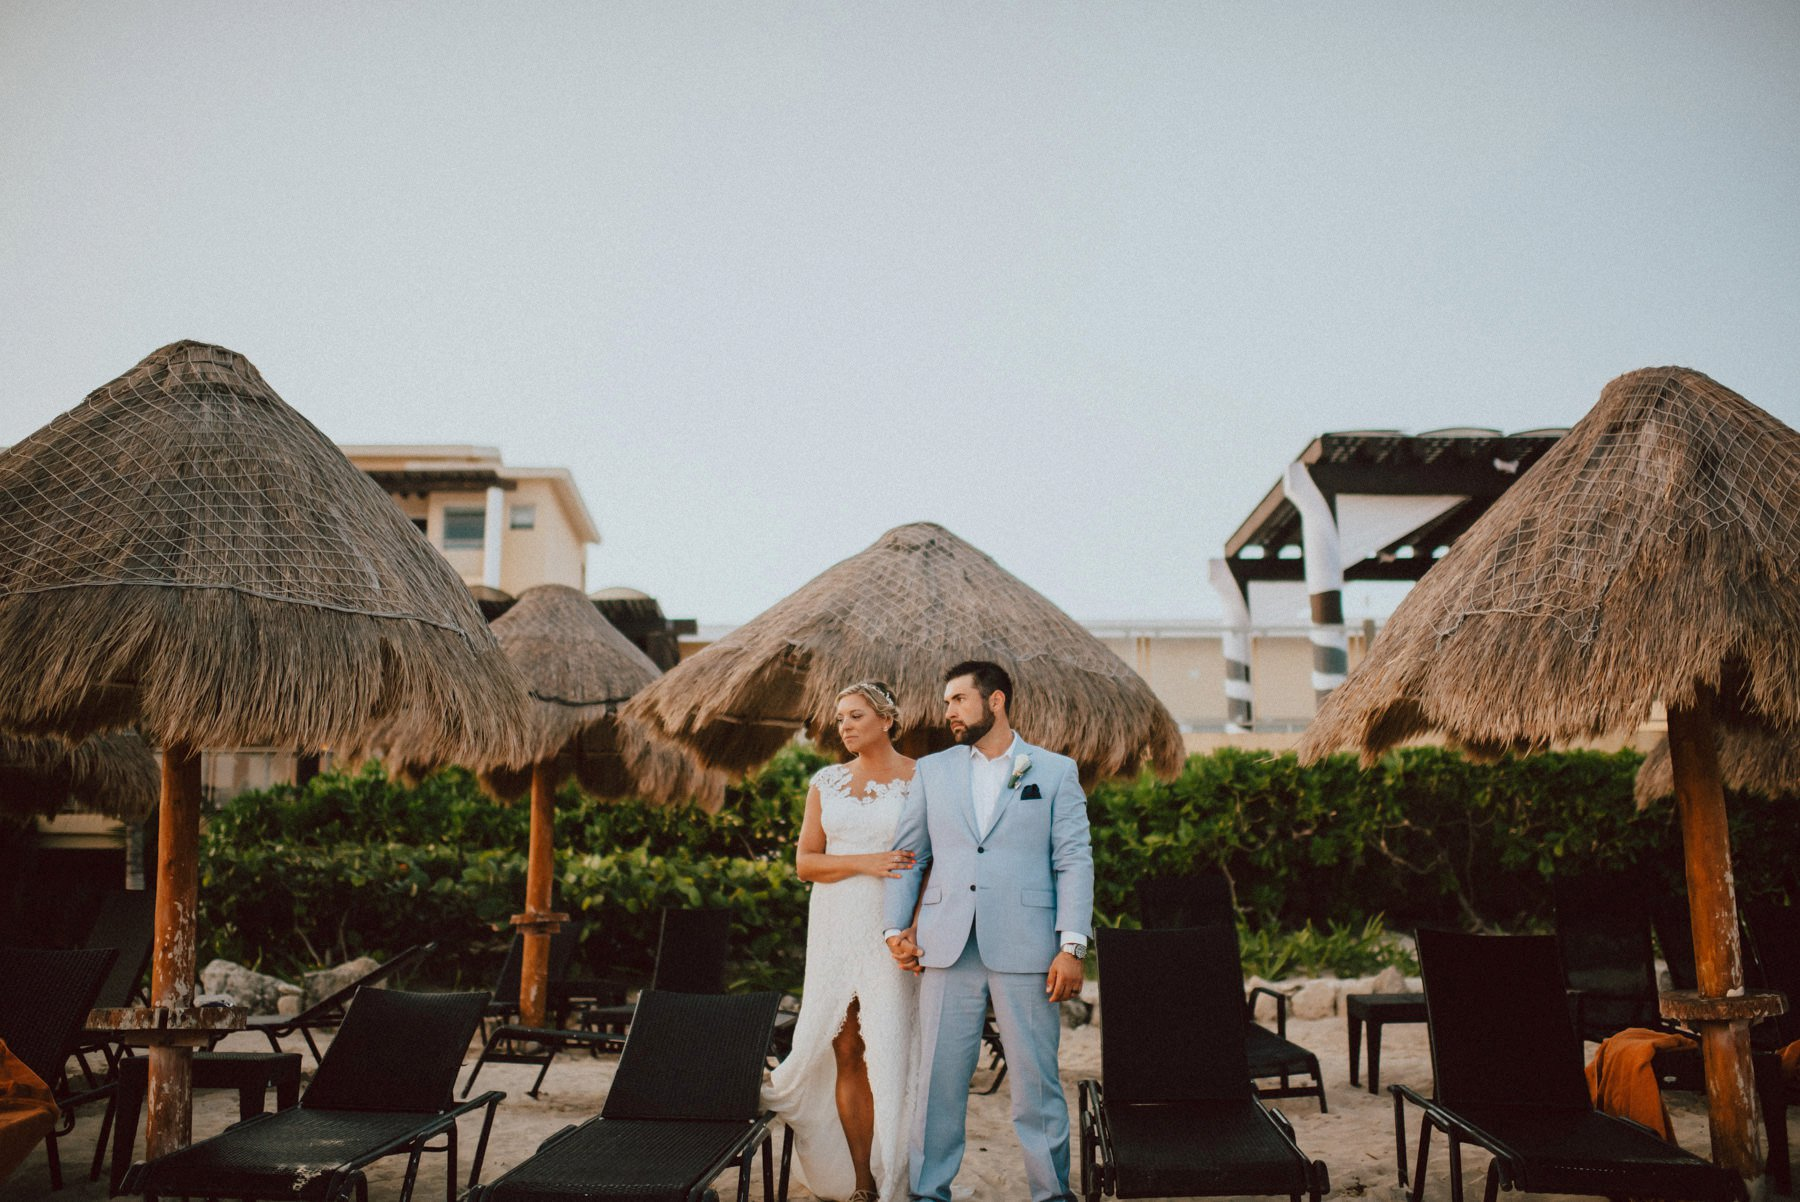 now-jade-riviera-cancun-mexico-wedding-photographer-95.jpg